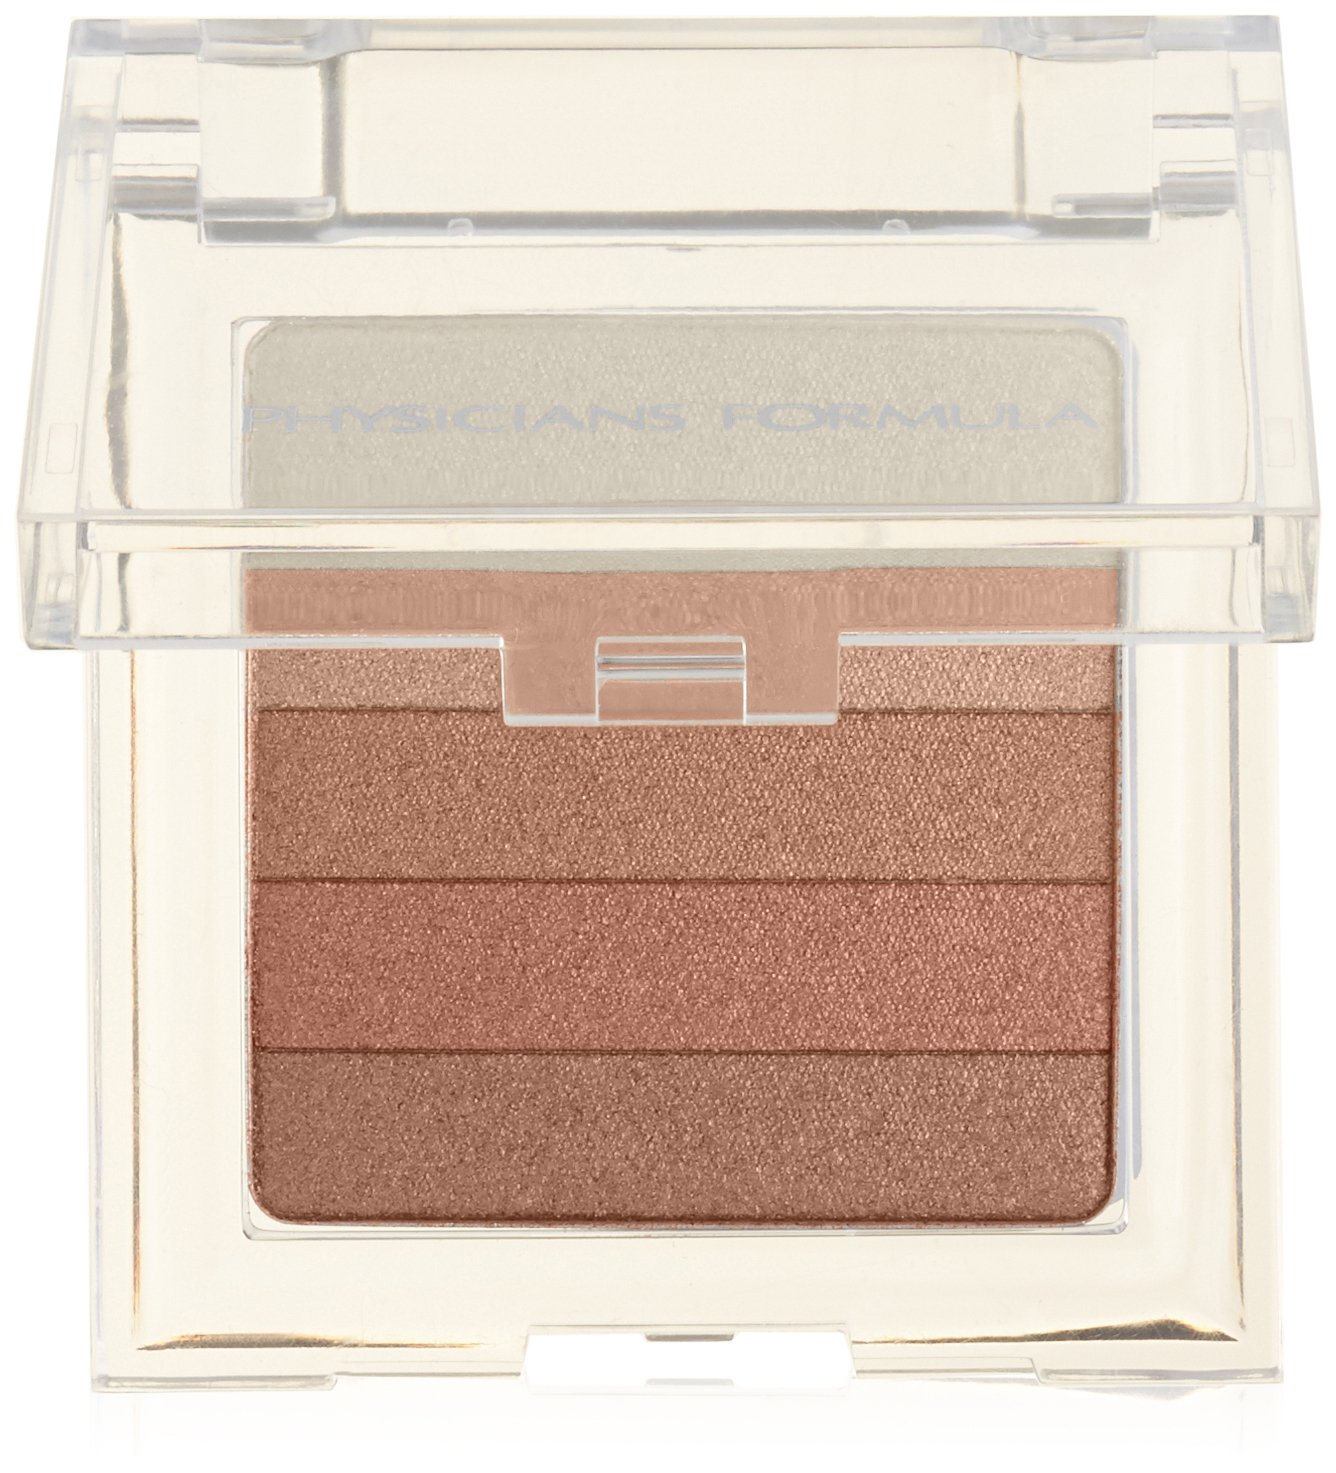 Physicians Formula Shimmer Strips, Malibu Strip/Pink Sand Bronzer, 0.3 Ounce